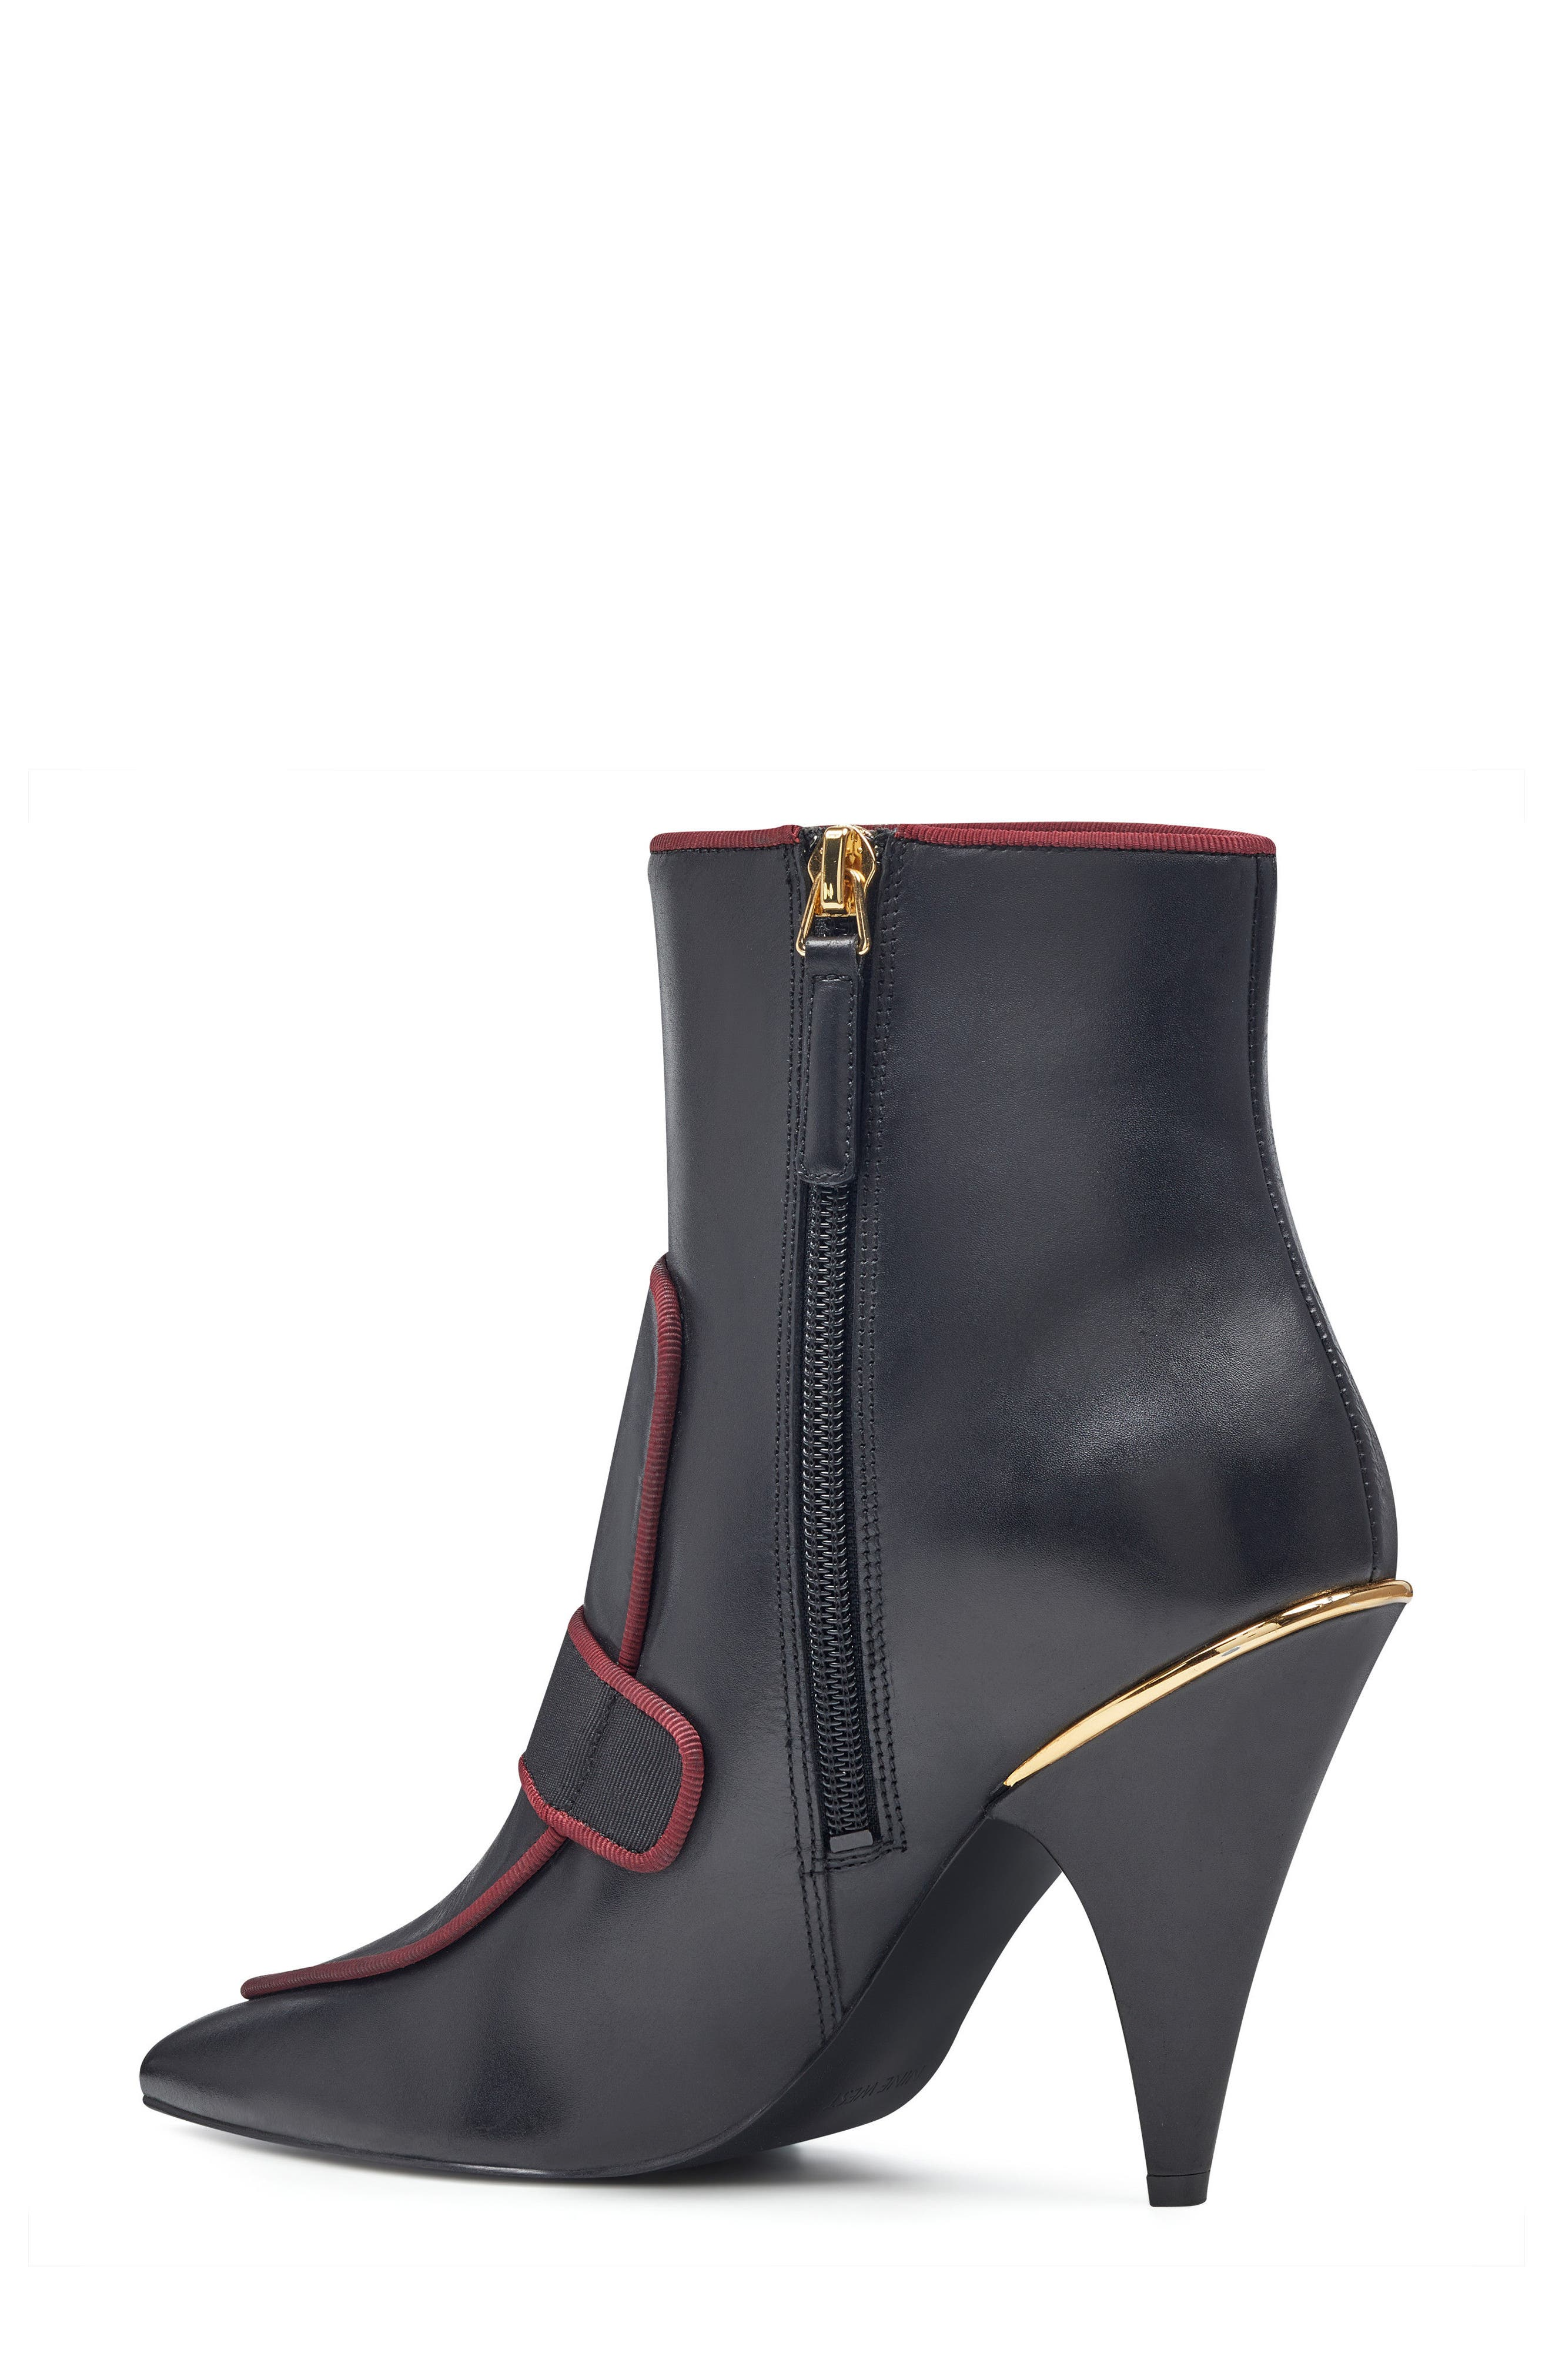 Westham Pointy Toe Bootie,                             Alternate thumbnail 2, color,                             Black/ Wine Leather